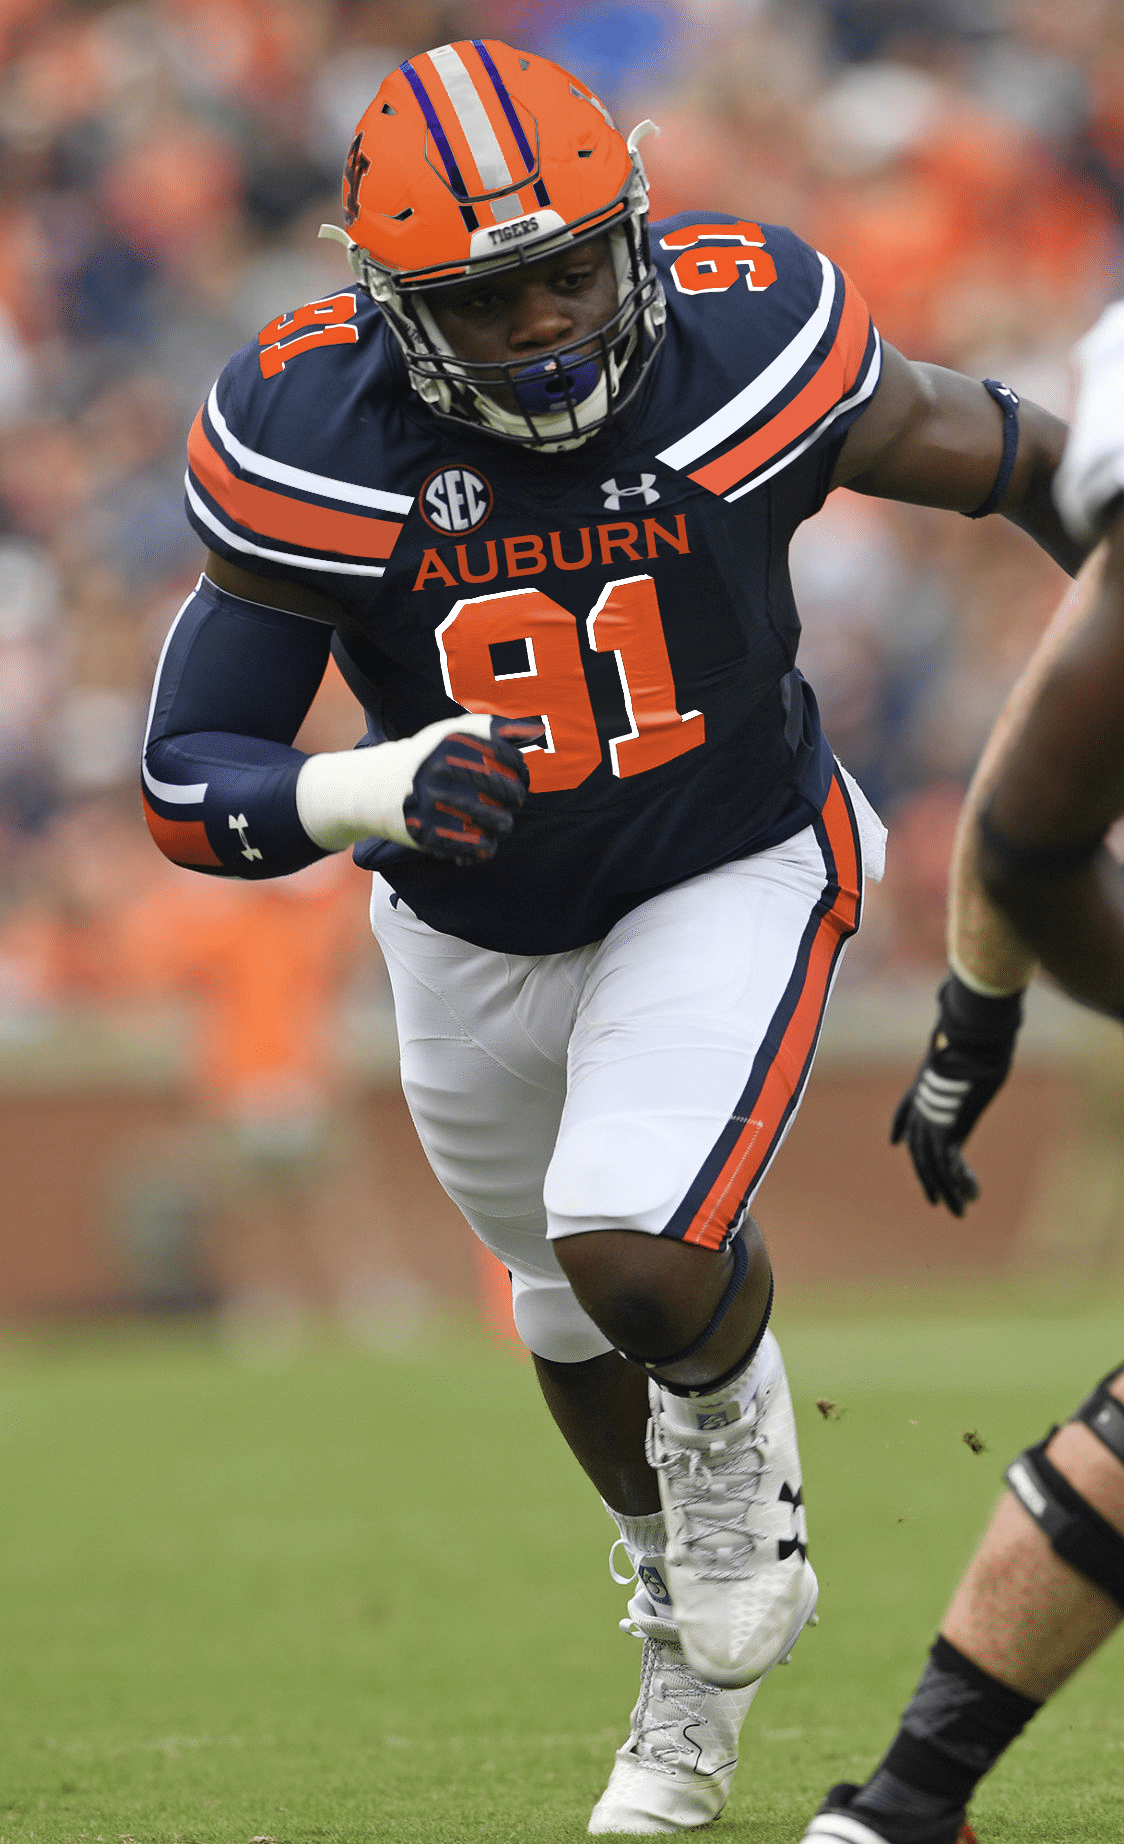 aa04e3c14d9 Auburn has one of the most traditional uniforms in college football. But  what about using even more traditional elements? That's what Carter wanted  to see.